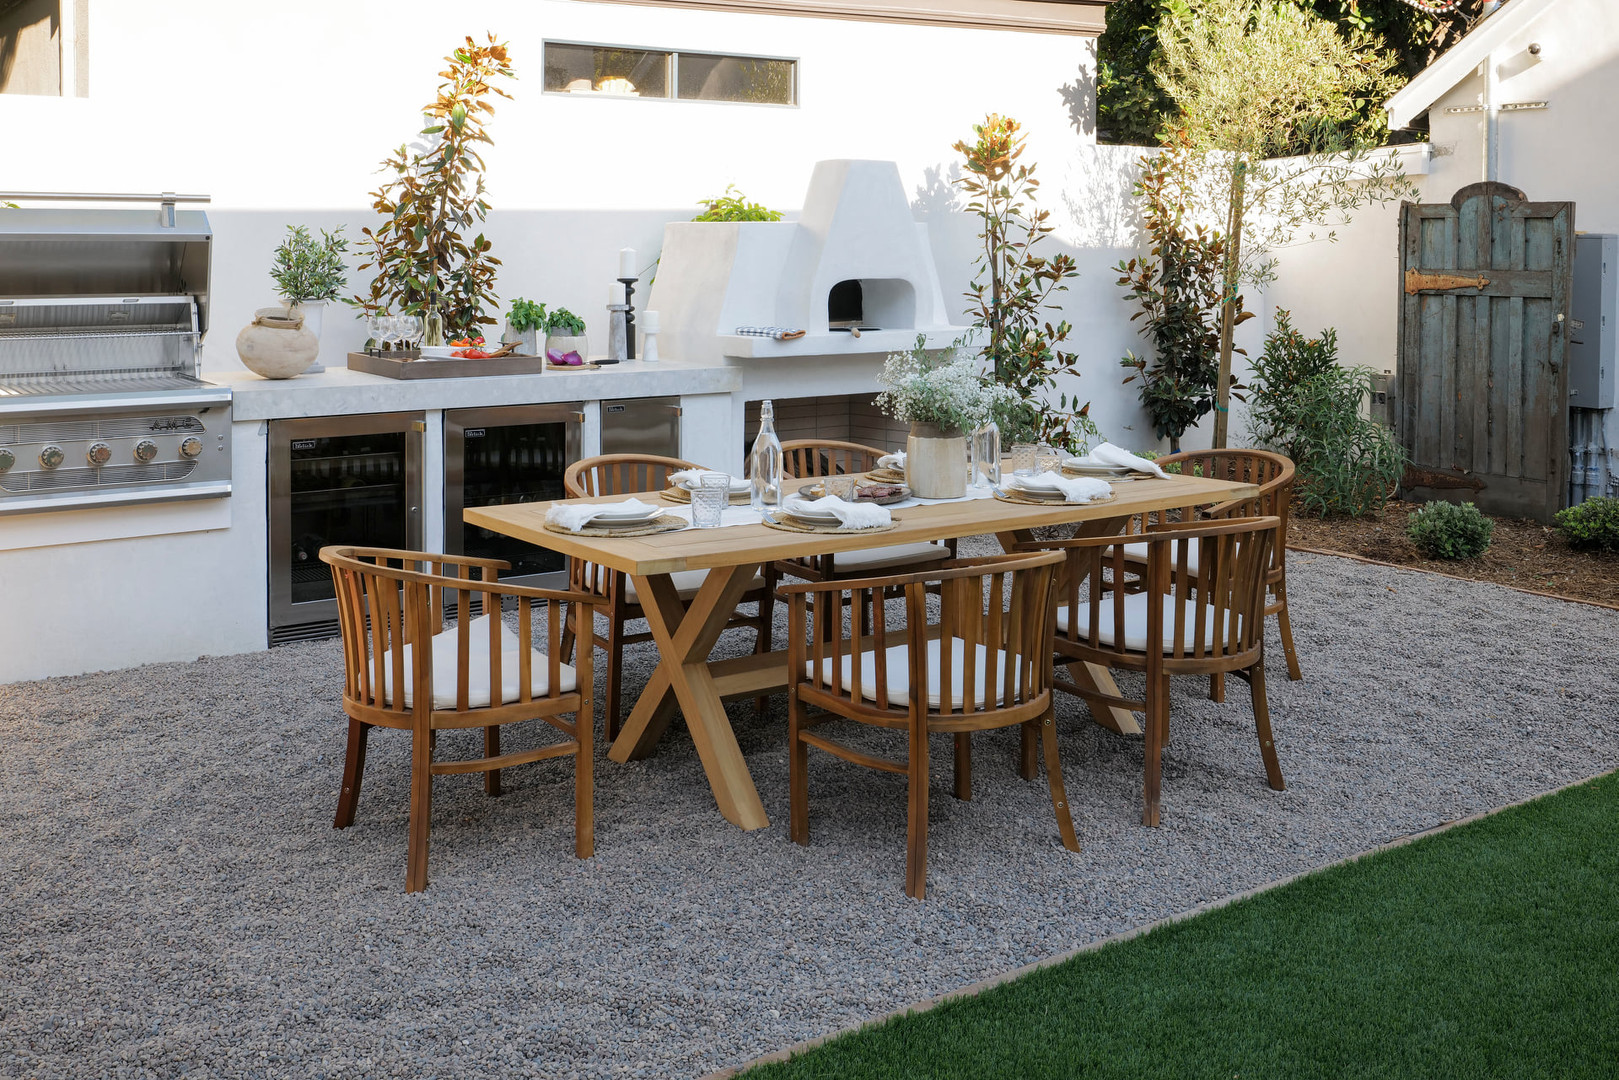 Outdoor living and eating